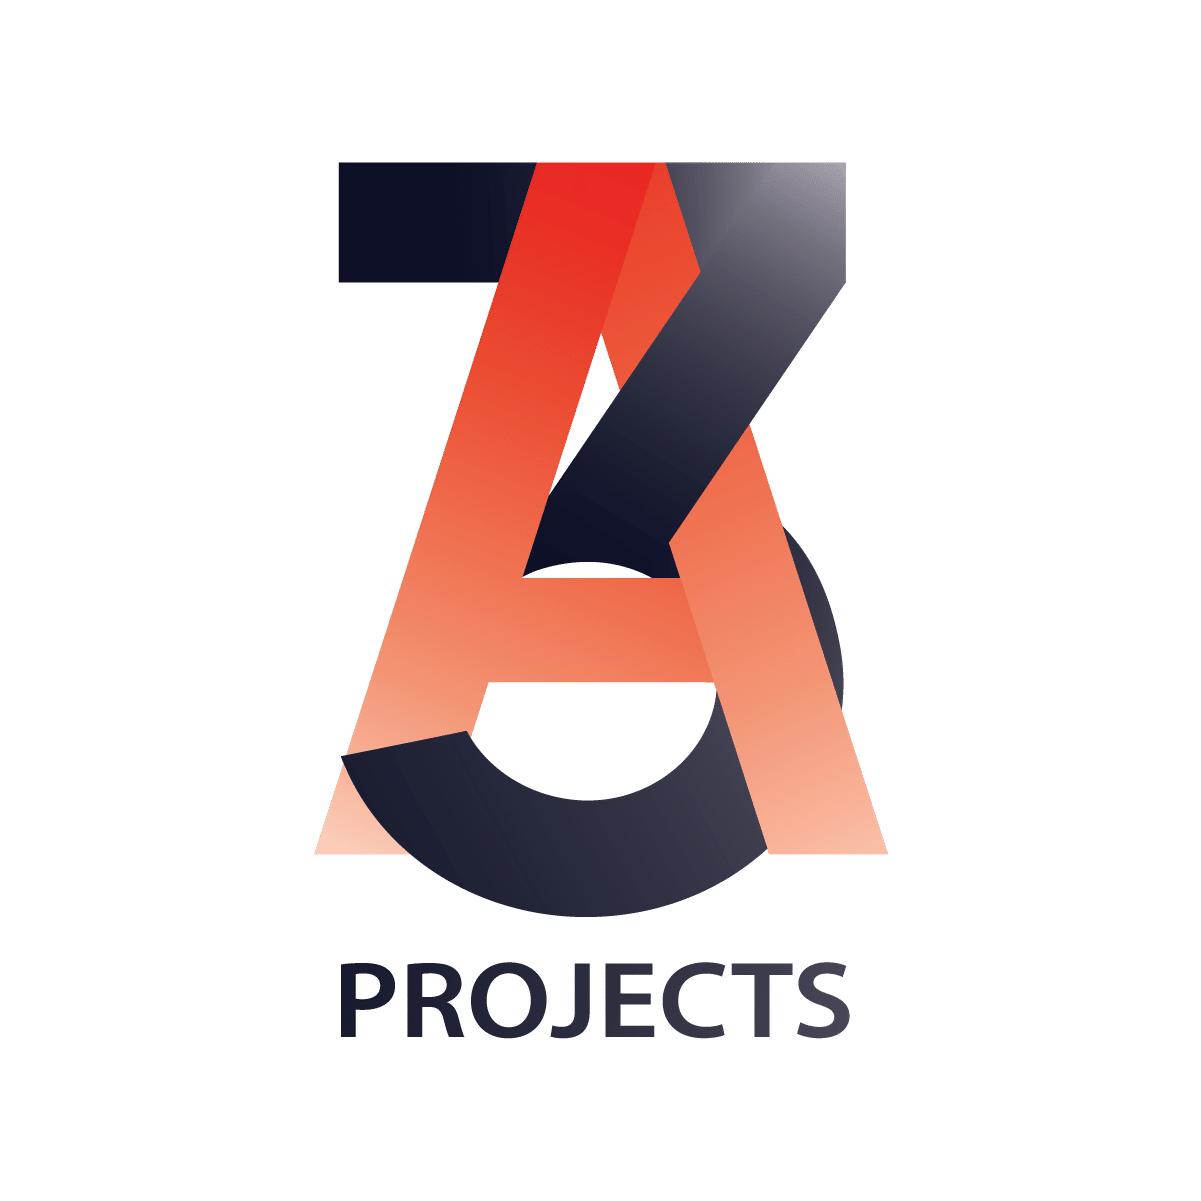 3A Projects